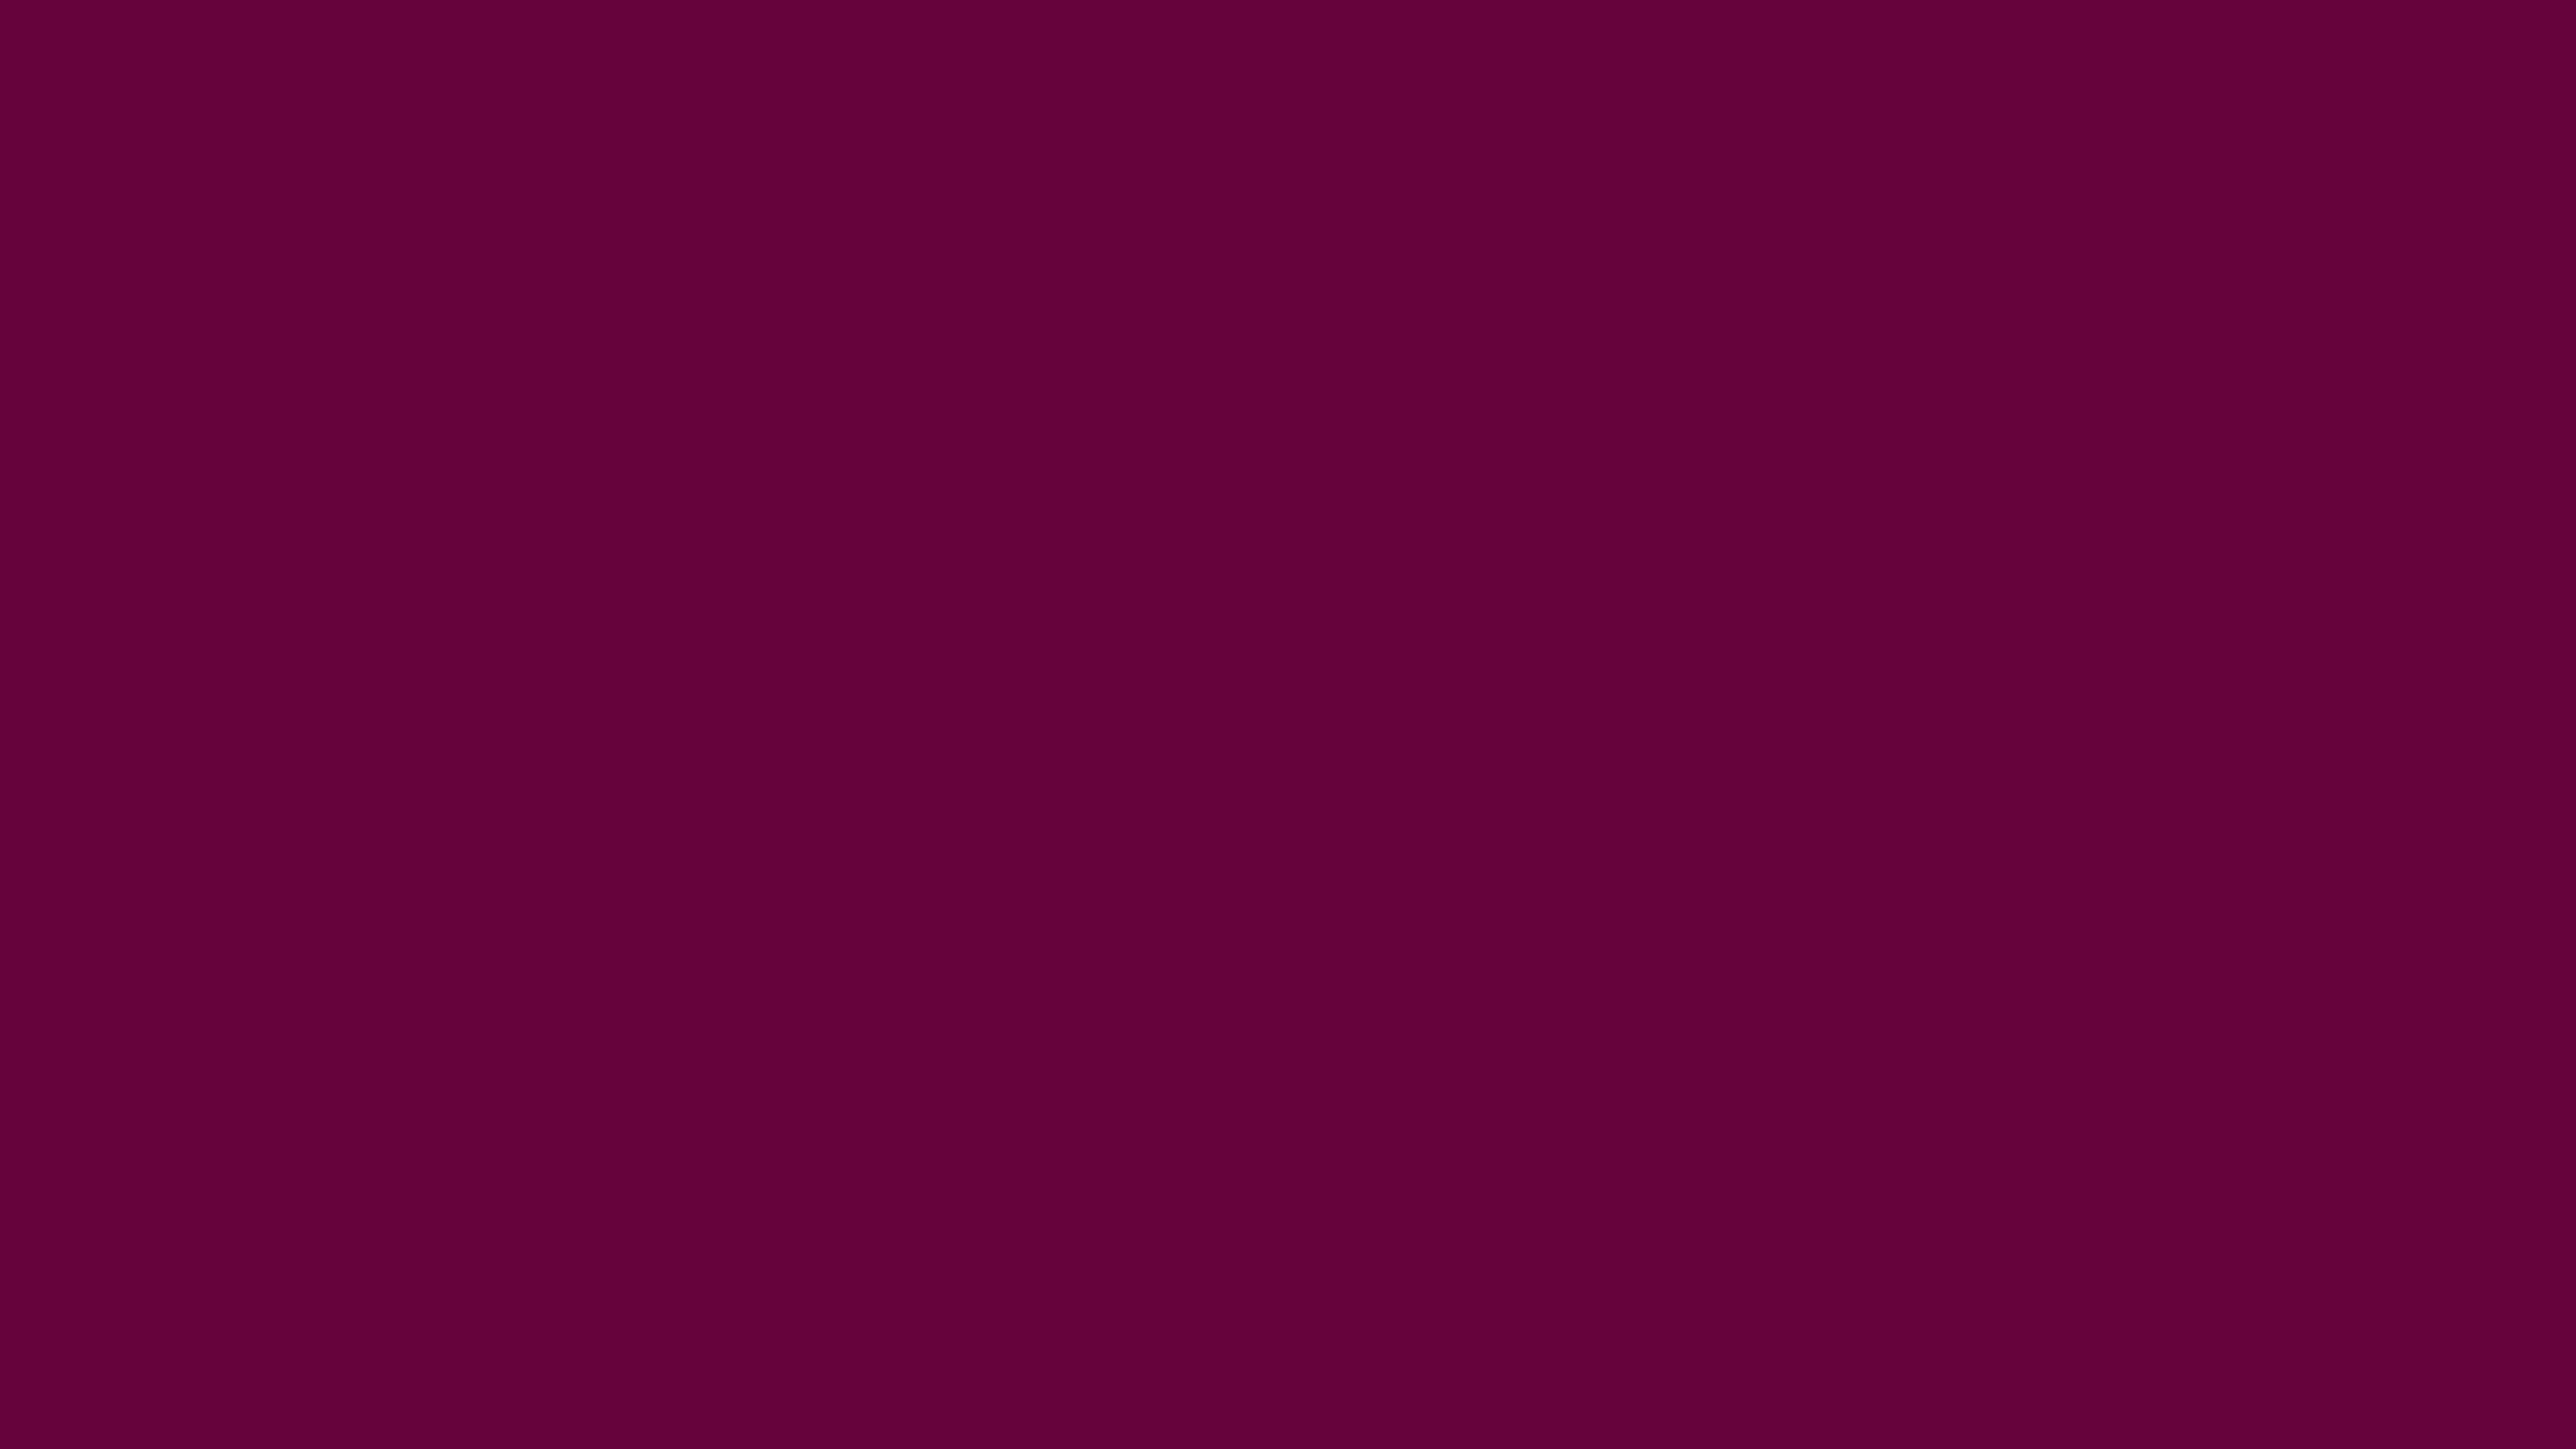 3840x2160 Tyrian Purple Solid Color Background